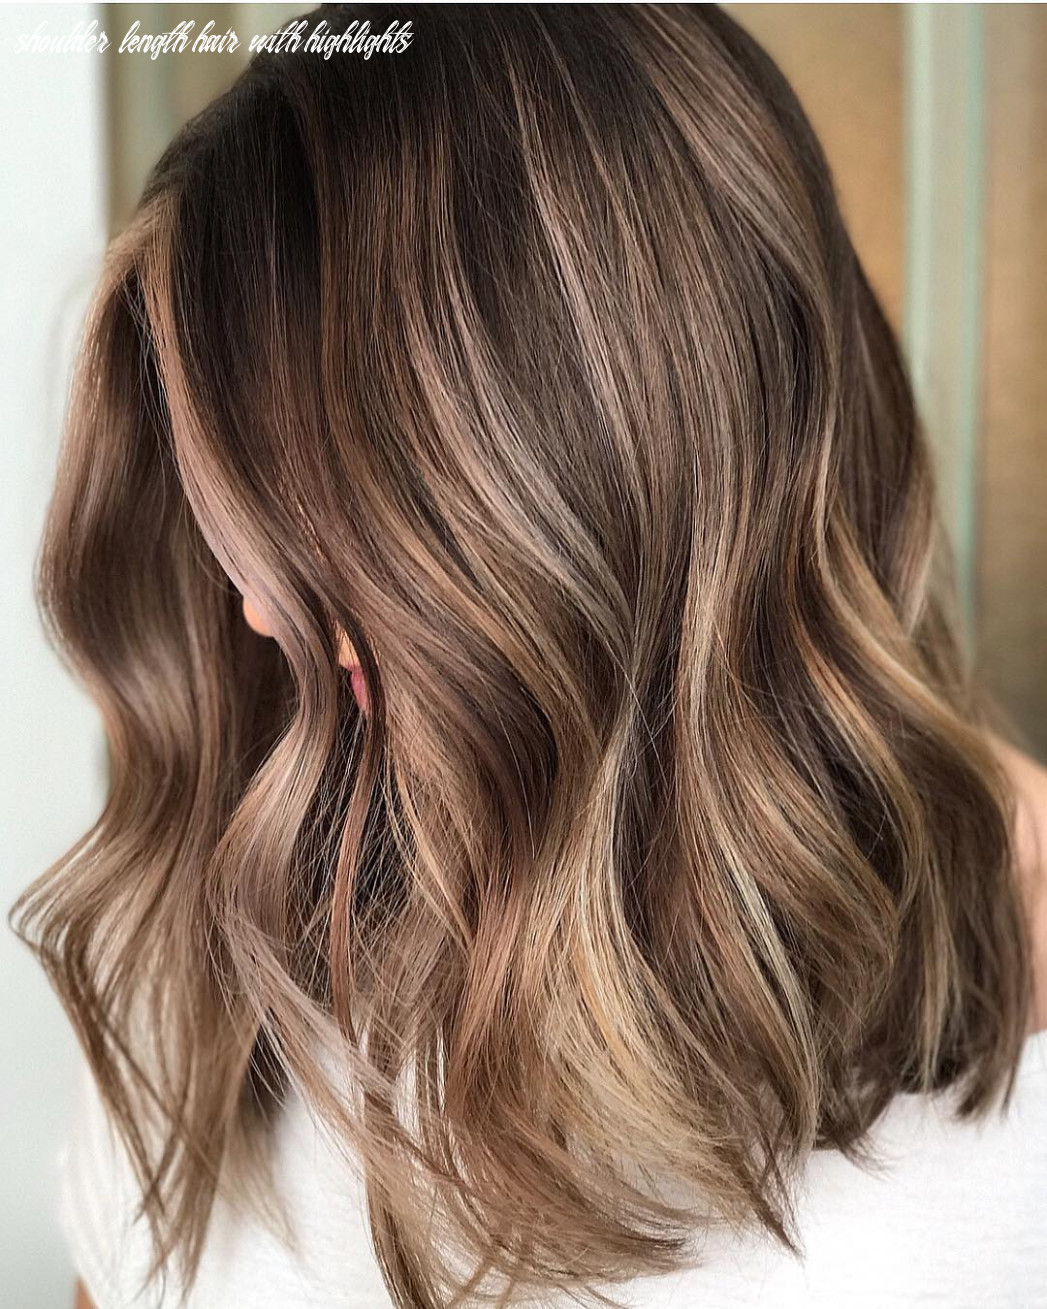 12 trendy brown balayage hairstyles for medium length hair 12 shoulder length hair with highlights